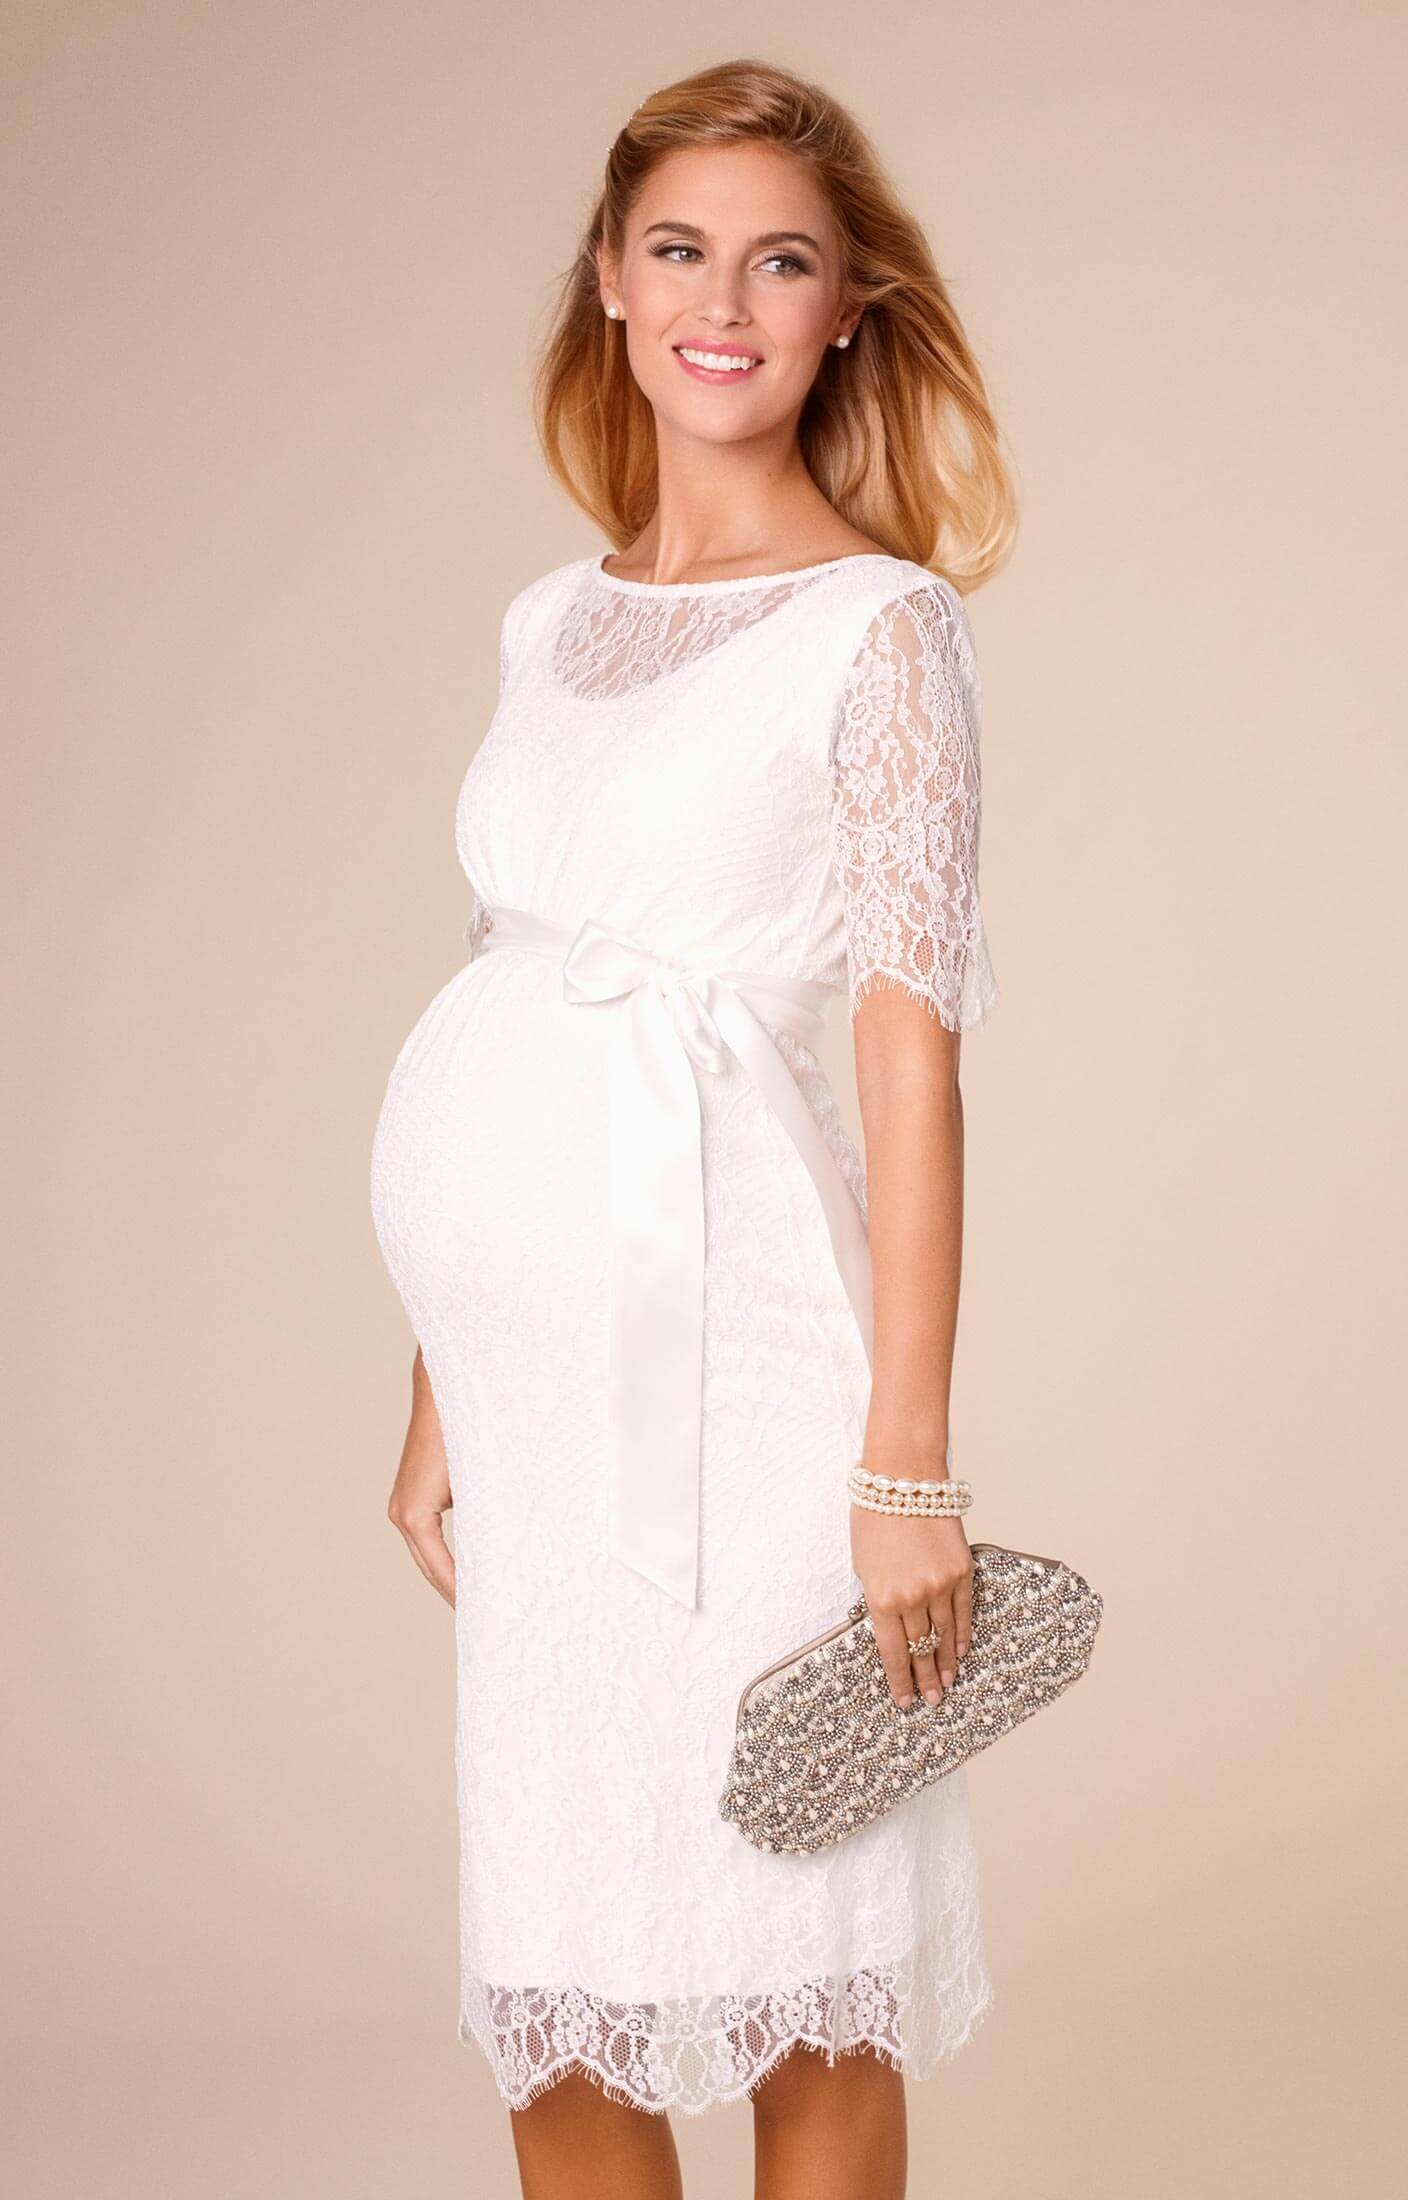 Starla Maternity Wedding Dress Short Ivory By Tiffany Rose